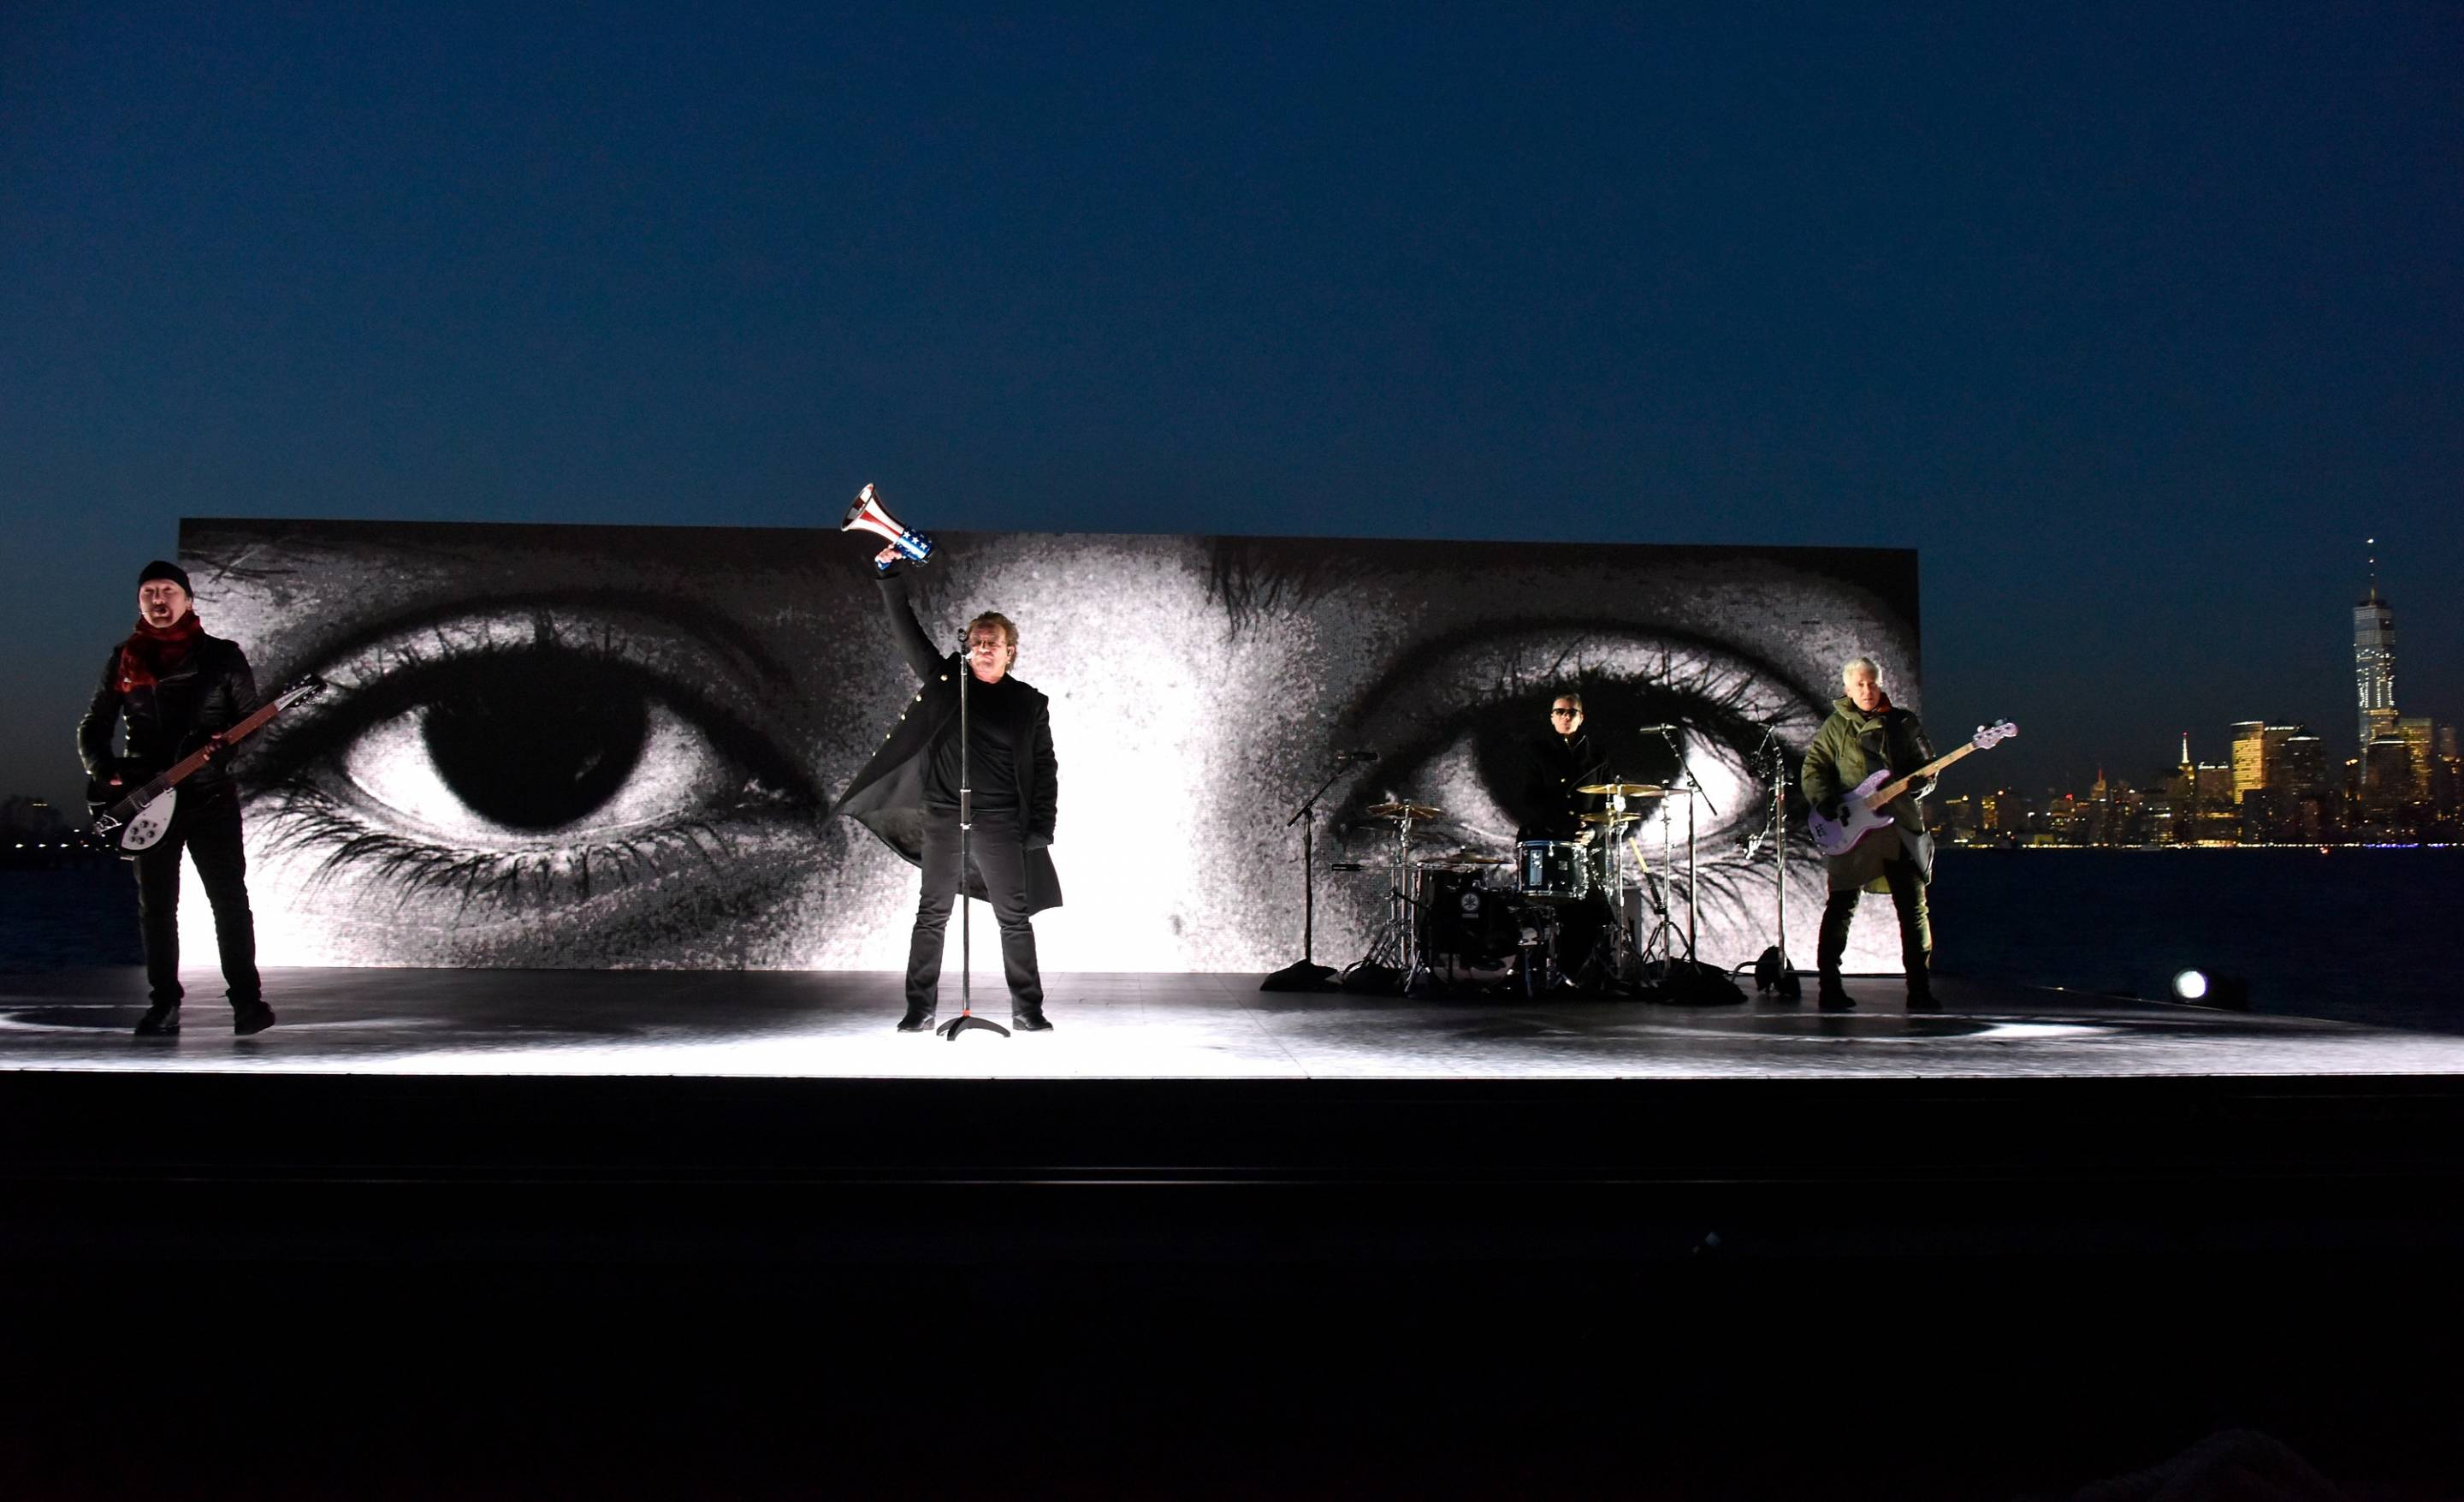 U2 makes a pro-immigration statement while performing on a barge during the 60th Annual Grammy Awards on Jan. 28, 2018, in New York City.